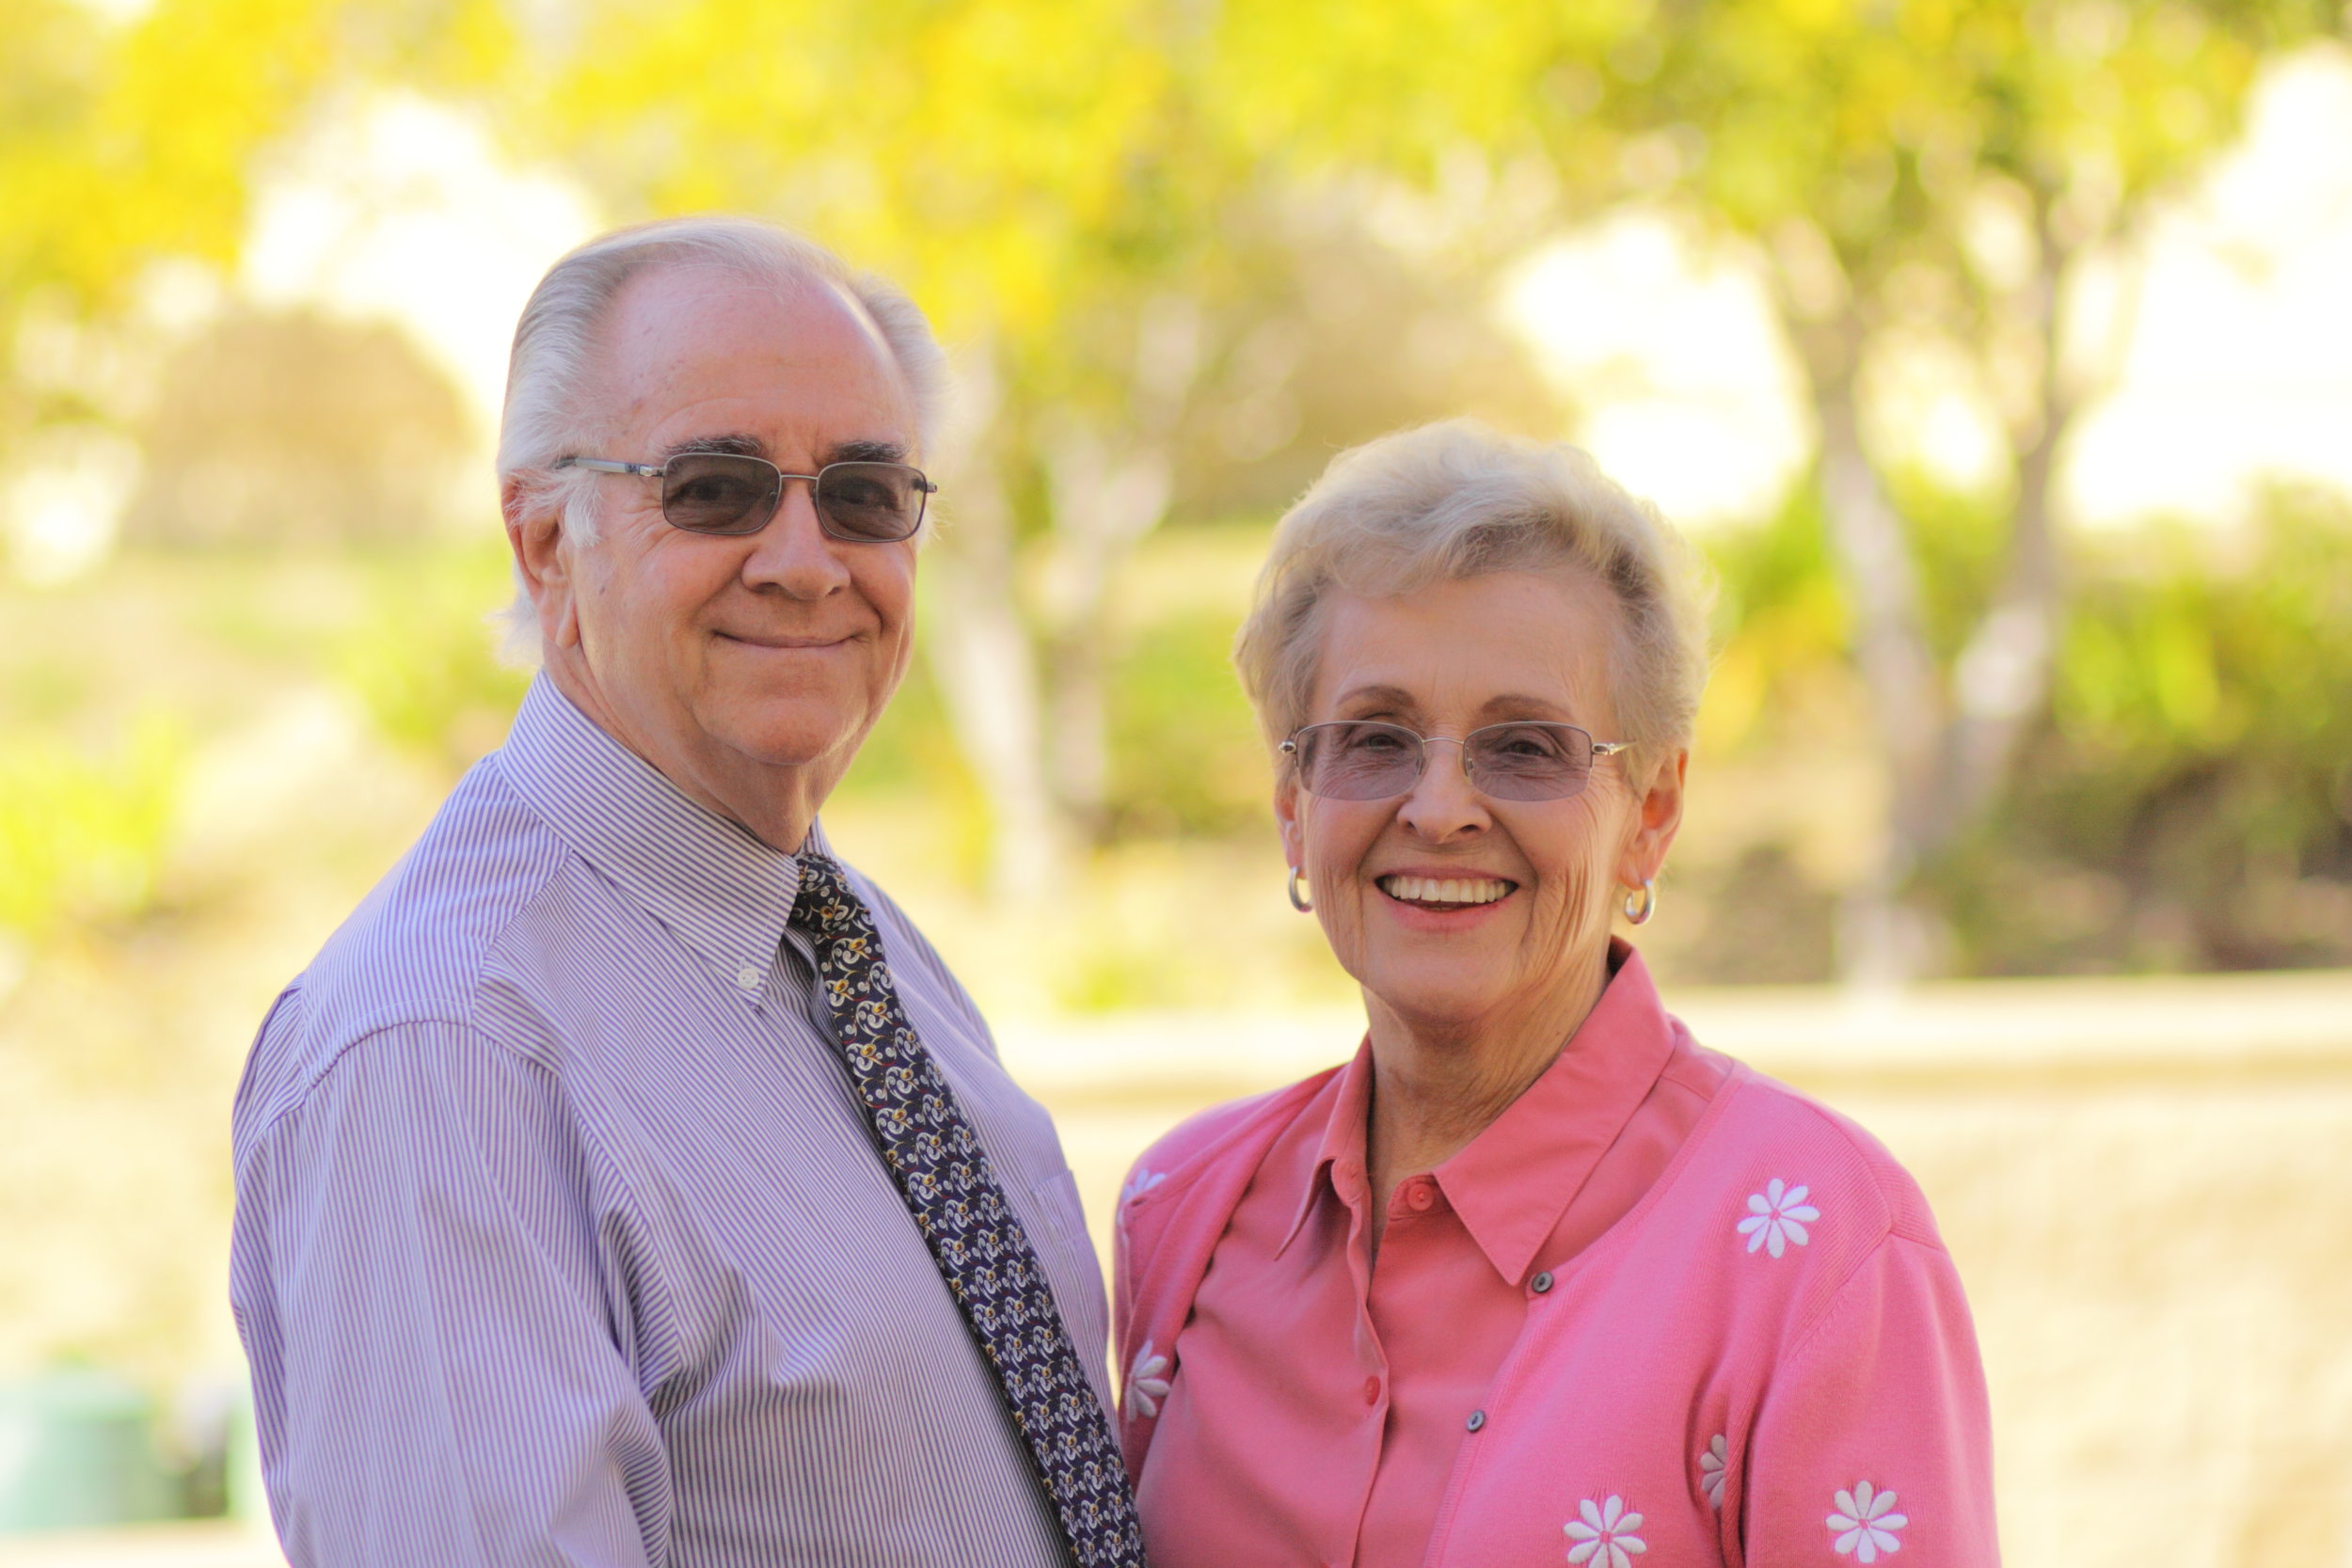 Bruce Summers   Bruce is a Deacon of Grace Fallbrook.  Bruce and his wife Genie have two adult children, and two grandchildren.